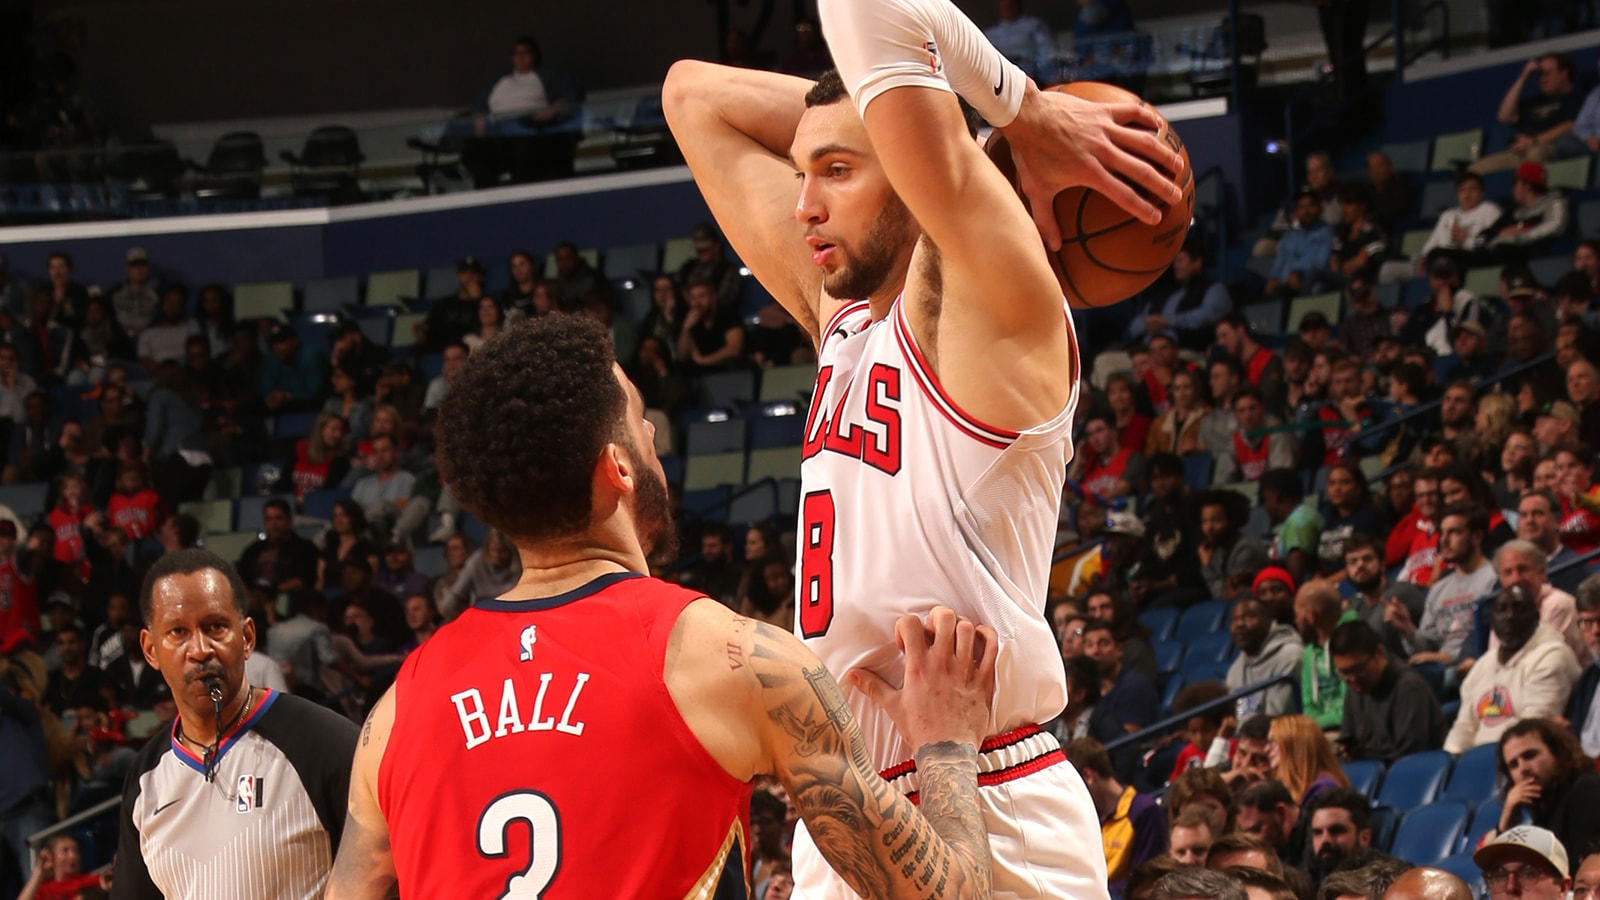 Zach LaVine against Lonzo Ball